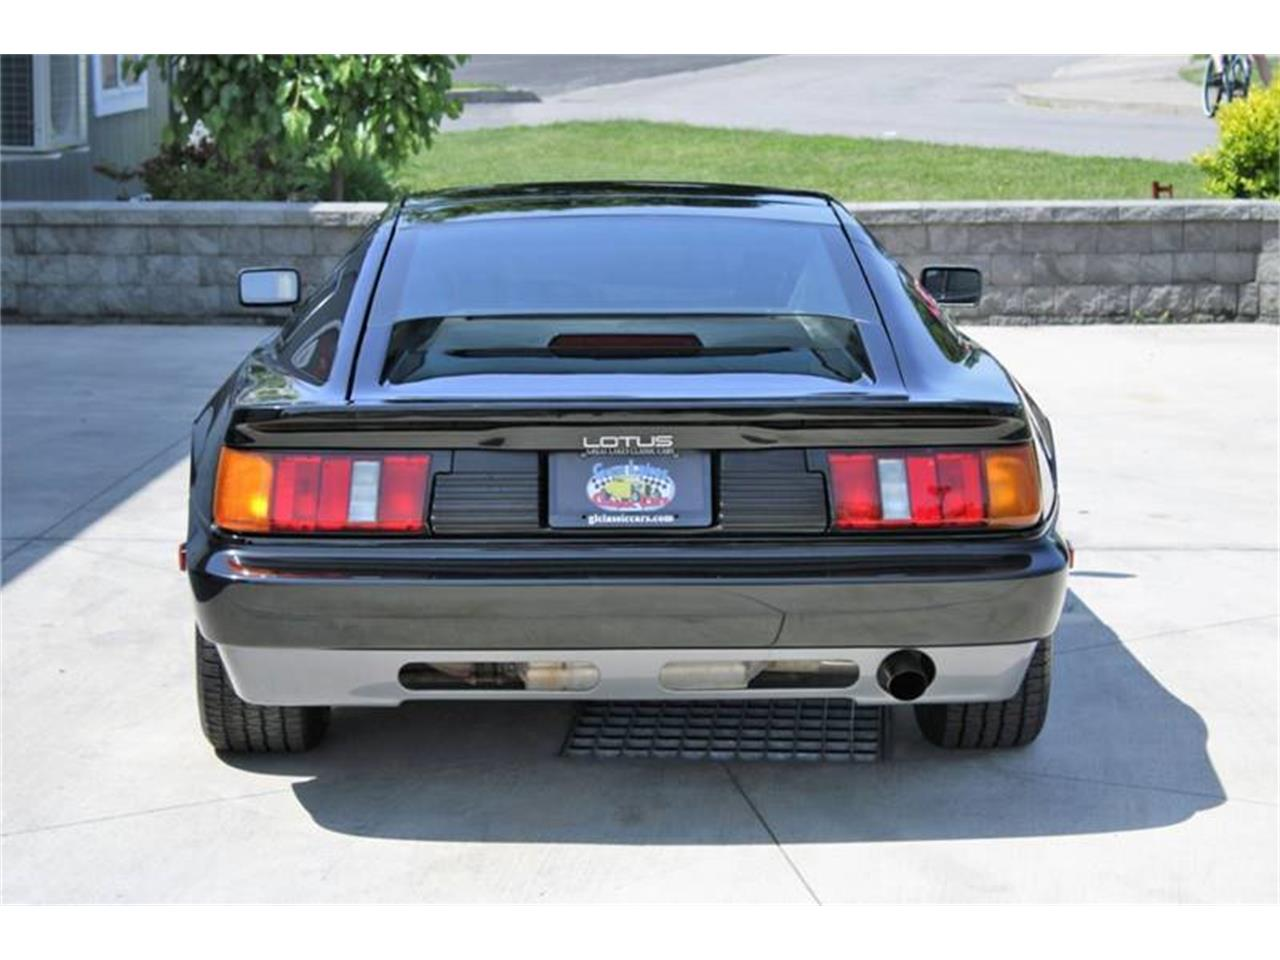 Large Picture of '88 Esprit located in Hilton New York - $26,495.00 - QE3Z